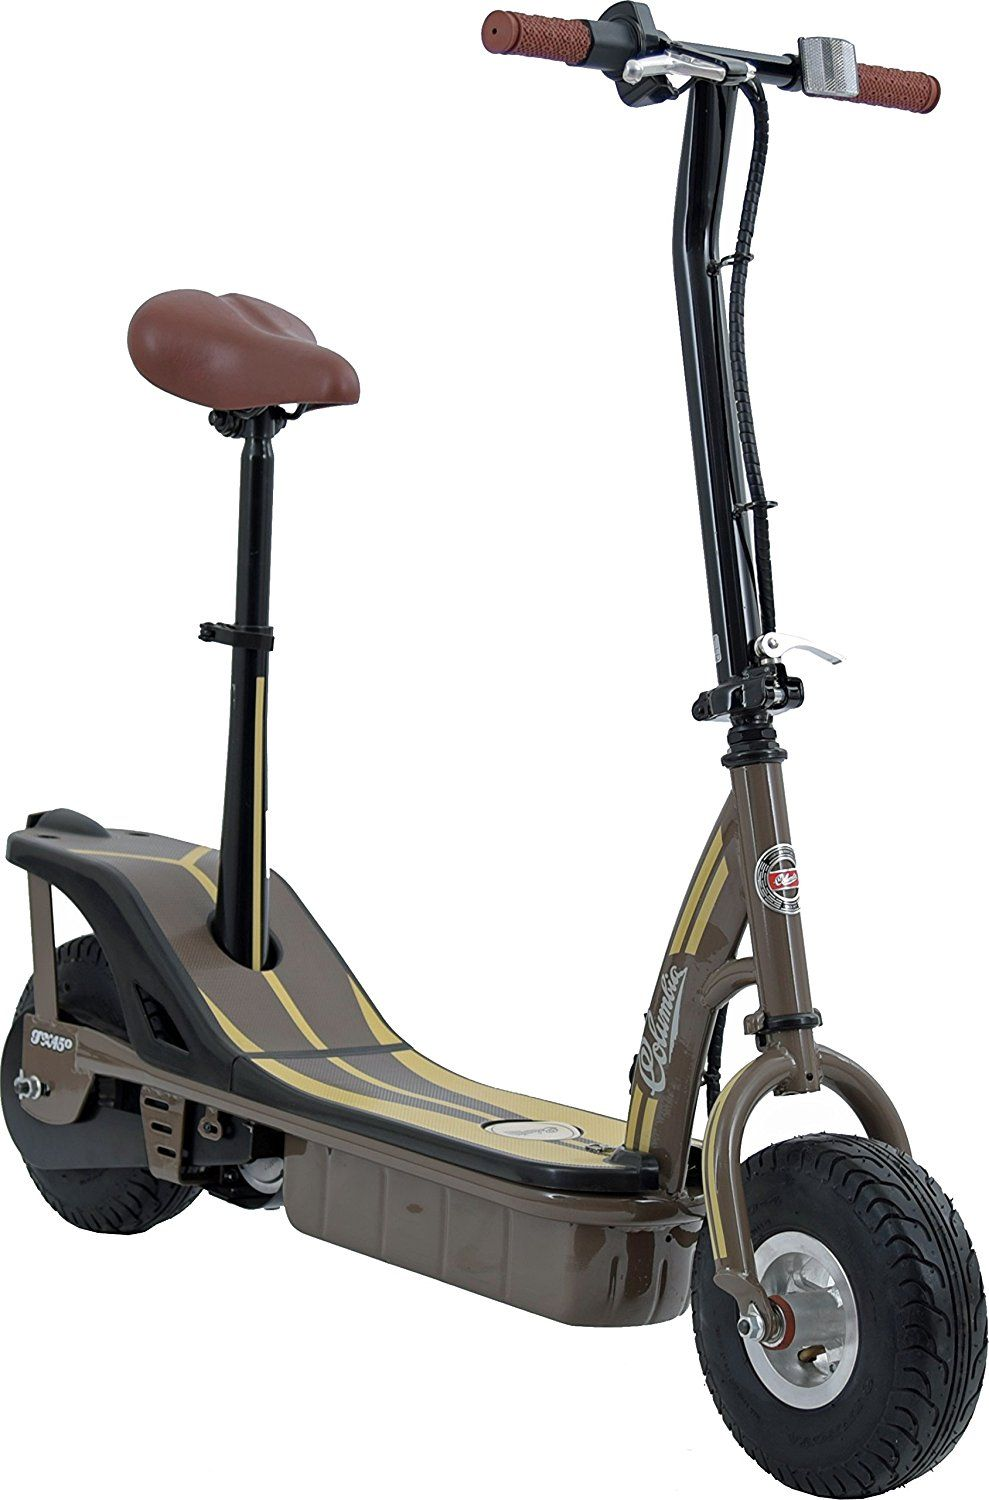 Columbia TX450 Seated Electric Scooter